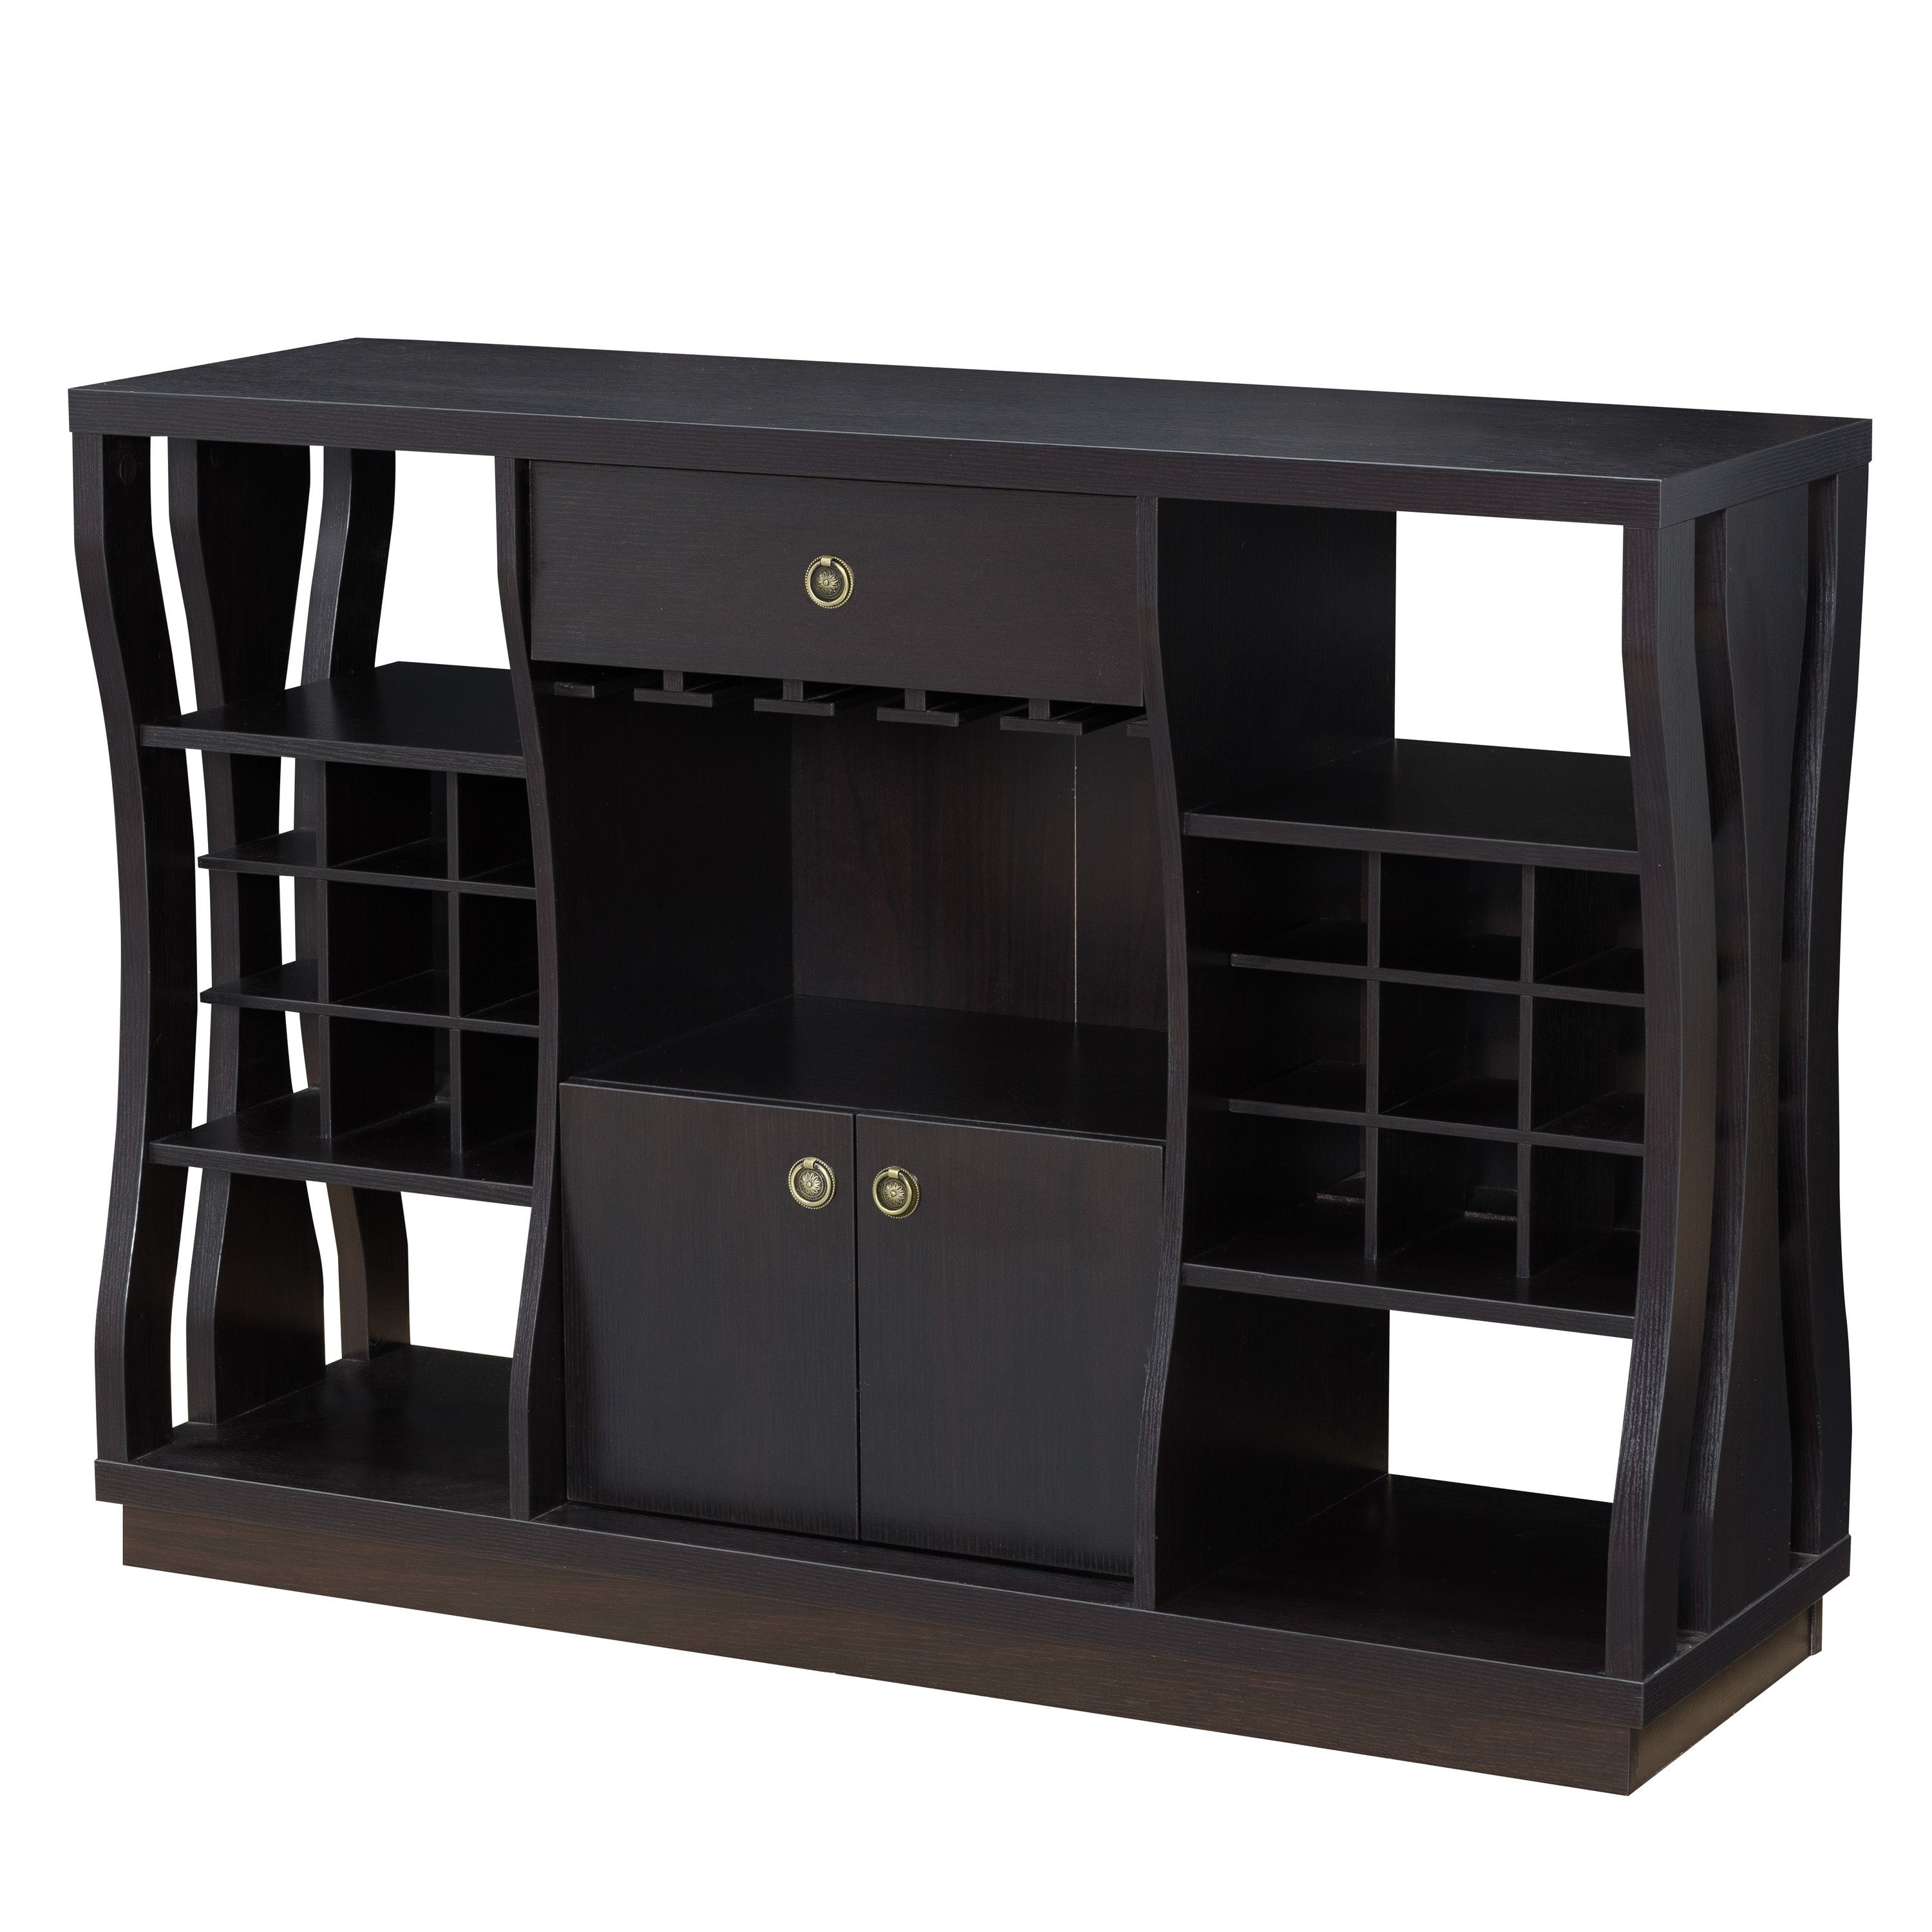 Terrena Modern Cappuccino Open Storage Dining Buffetfoa For Modern Cappuccino Open Storage Dining Buffets (View 14 of 20)